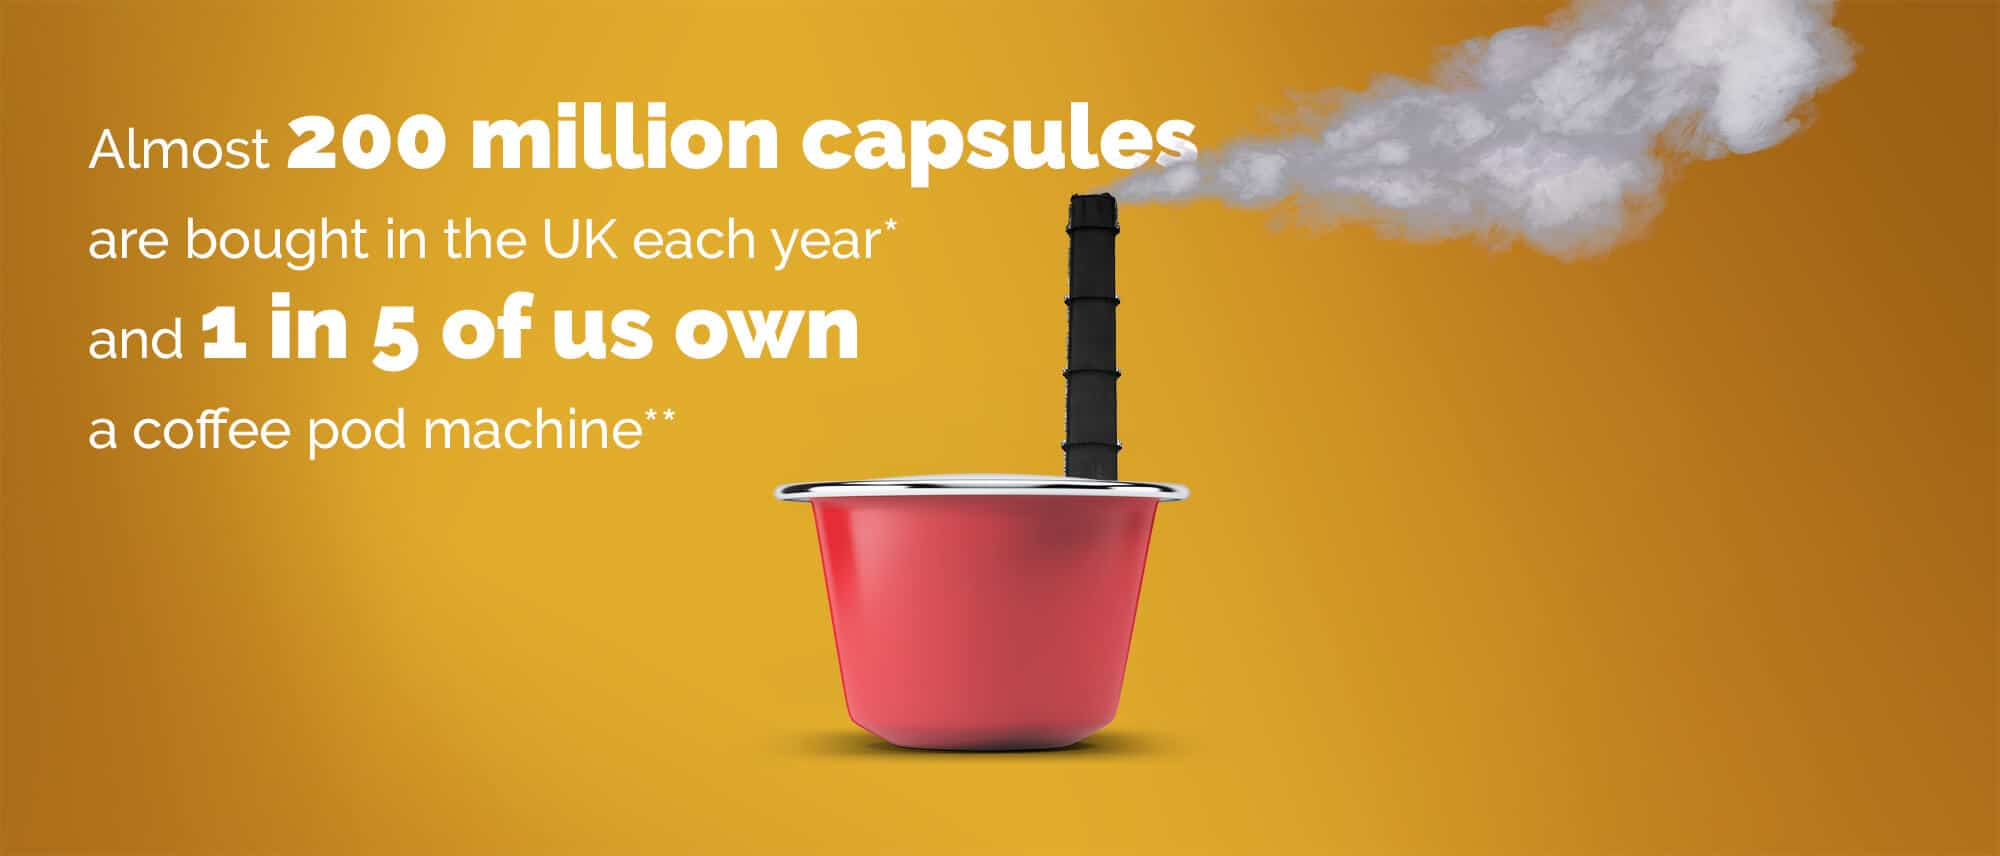 "smoking coffee pod image and text ""Almost 200 million capsules are bought in the UK each year and 1 in 5 of us own a coffee pod machine"""